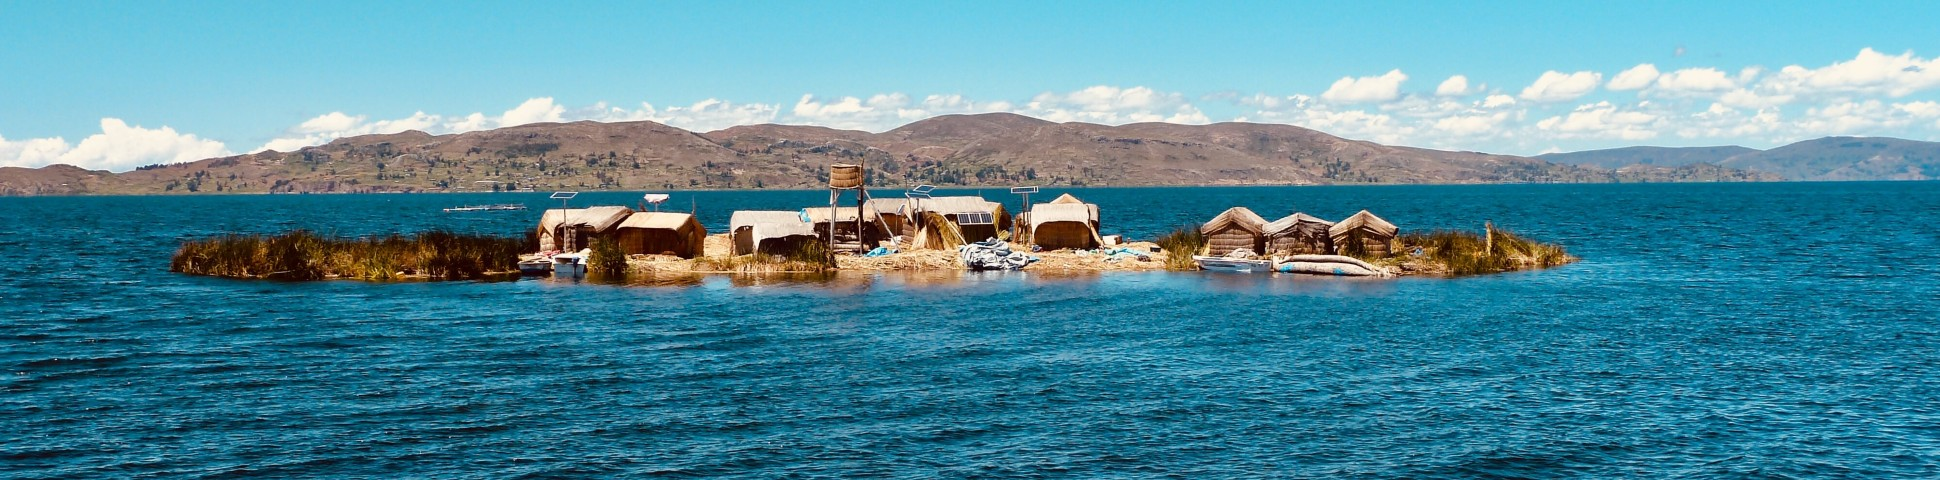 Titicaca in Peru